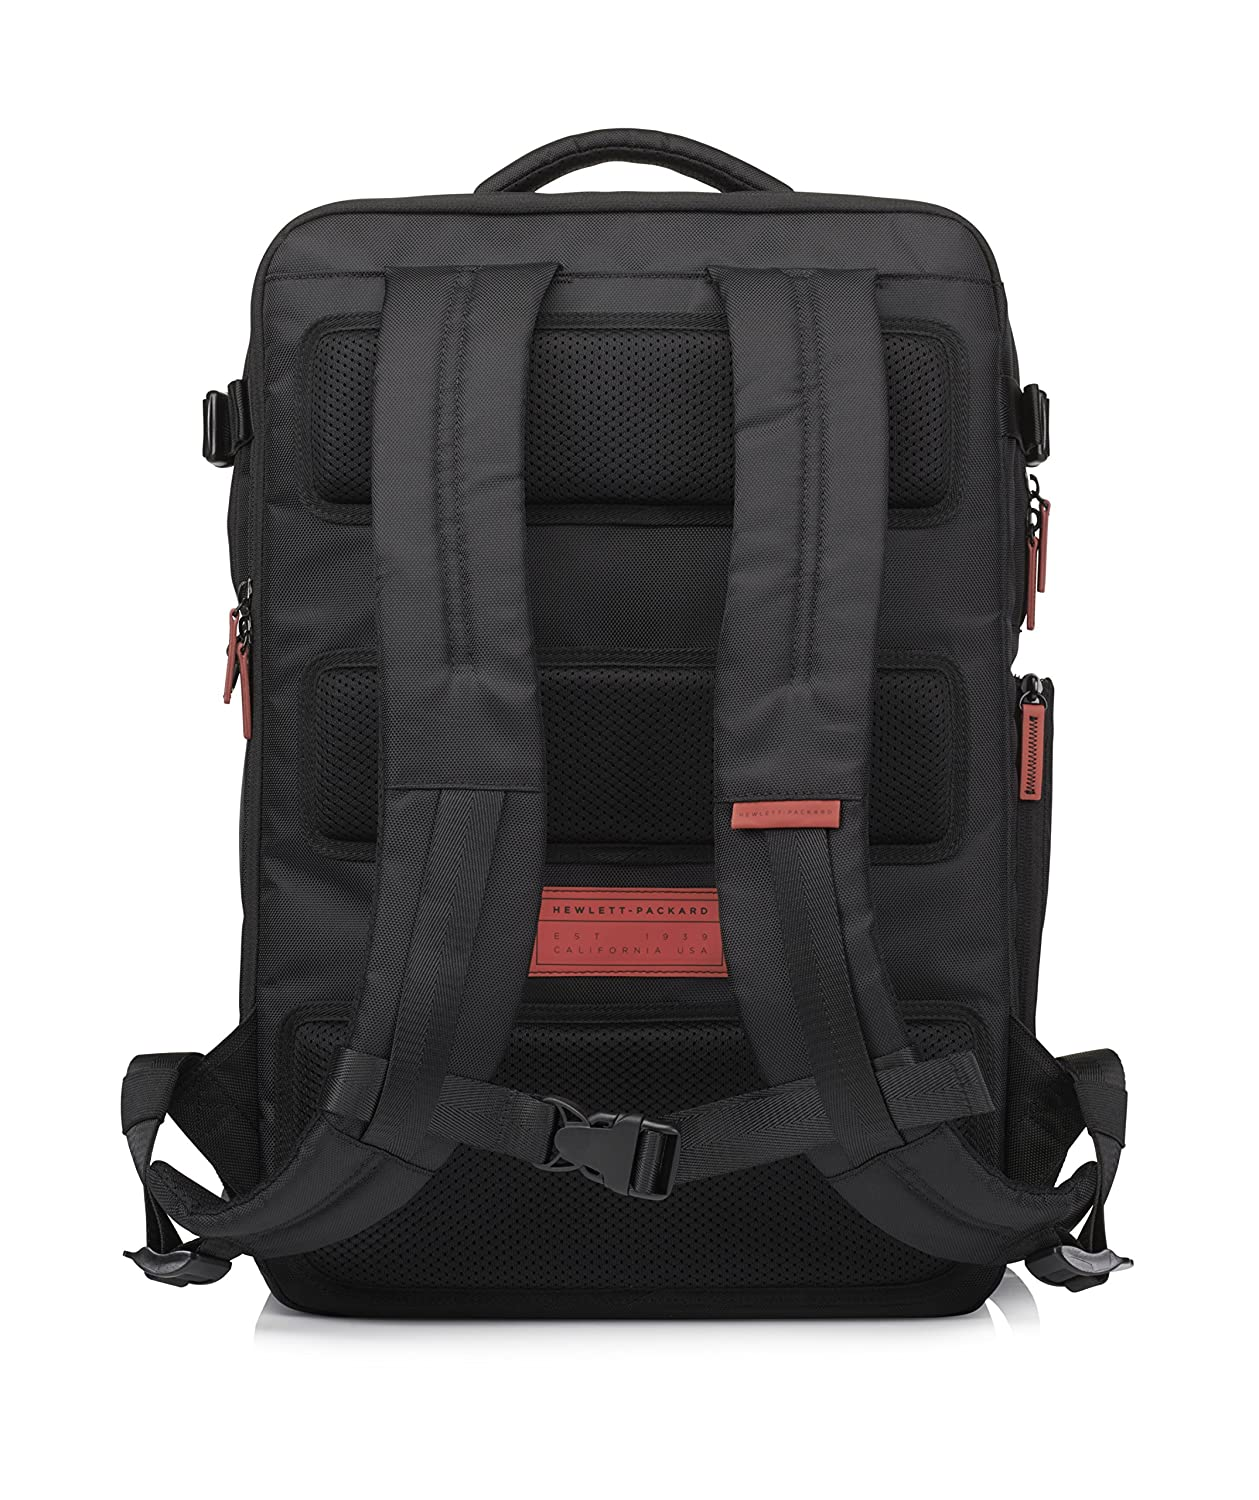 72950fa088 Amazon.com  HP Omen Gaming Backpack  Computers   Accessories